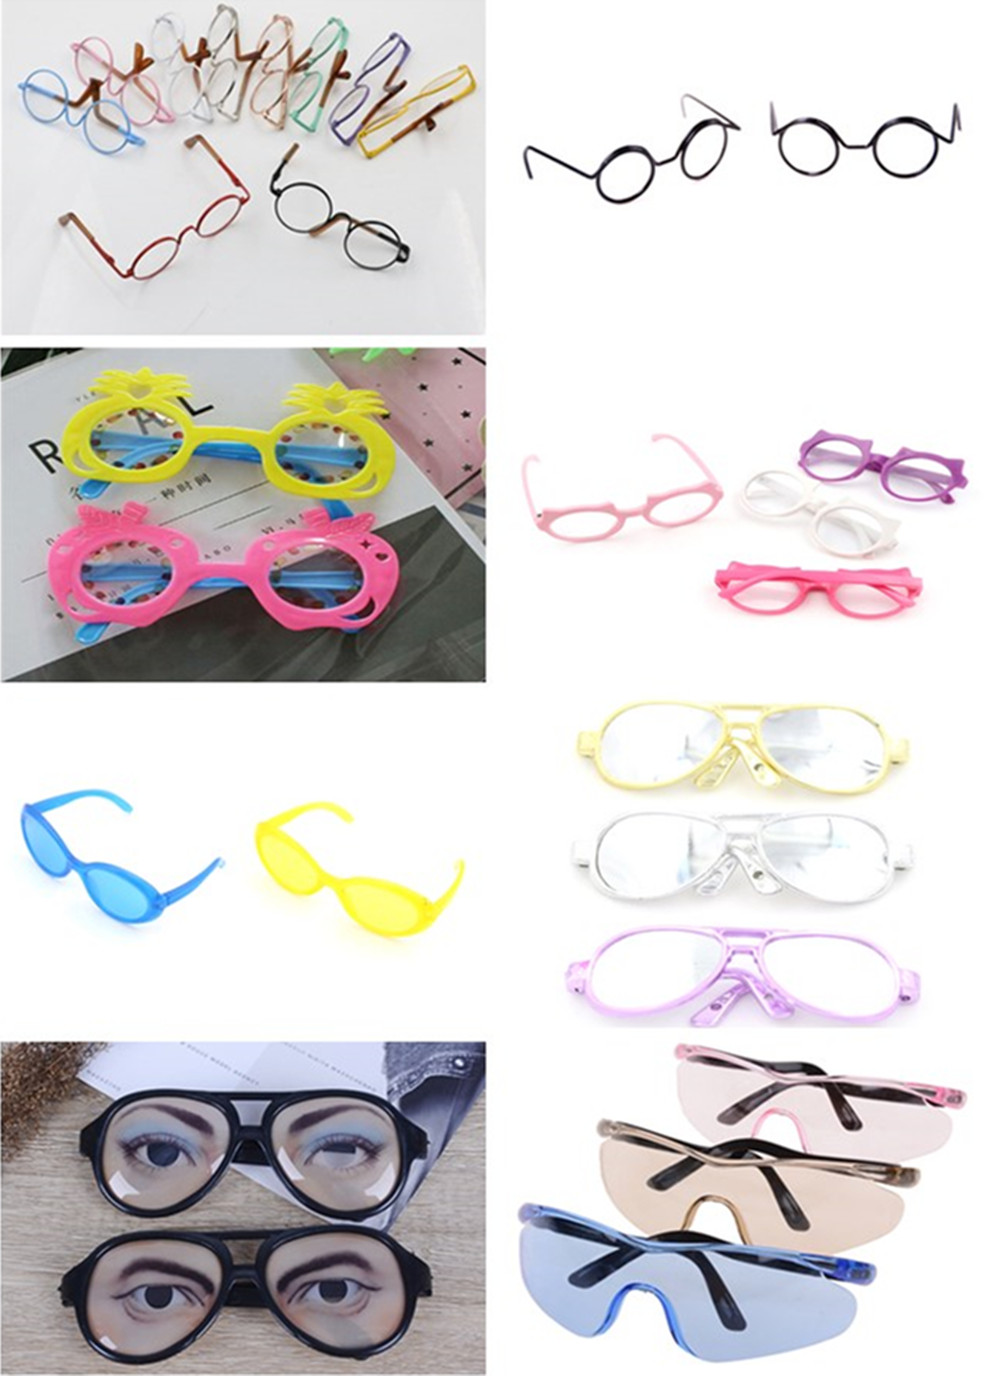 Colorful Glasses Round Glasses Suitable For BJD Blythe Doll As For  Dolls Sunglasses  Safety Glasses Spectacles Eye Accessories